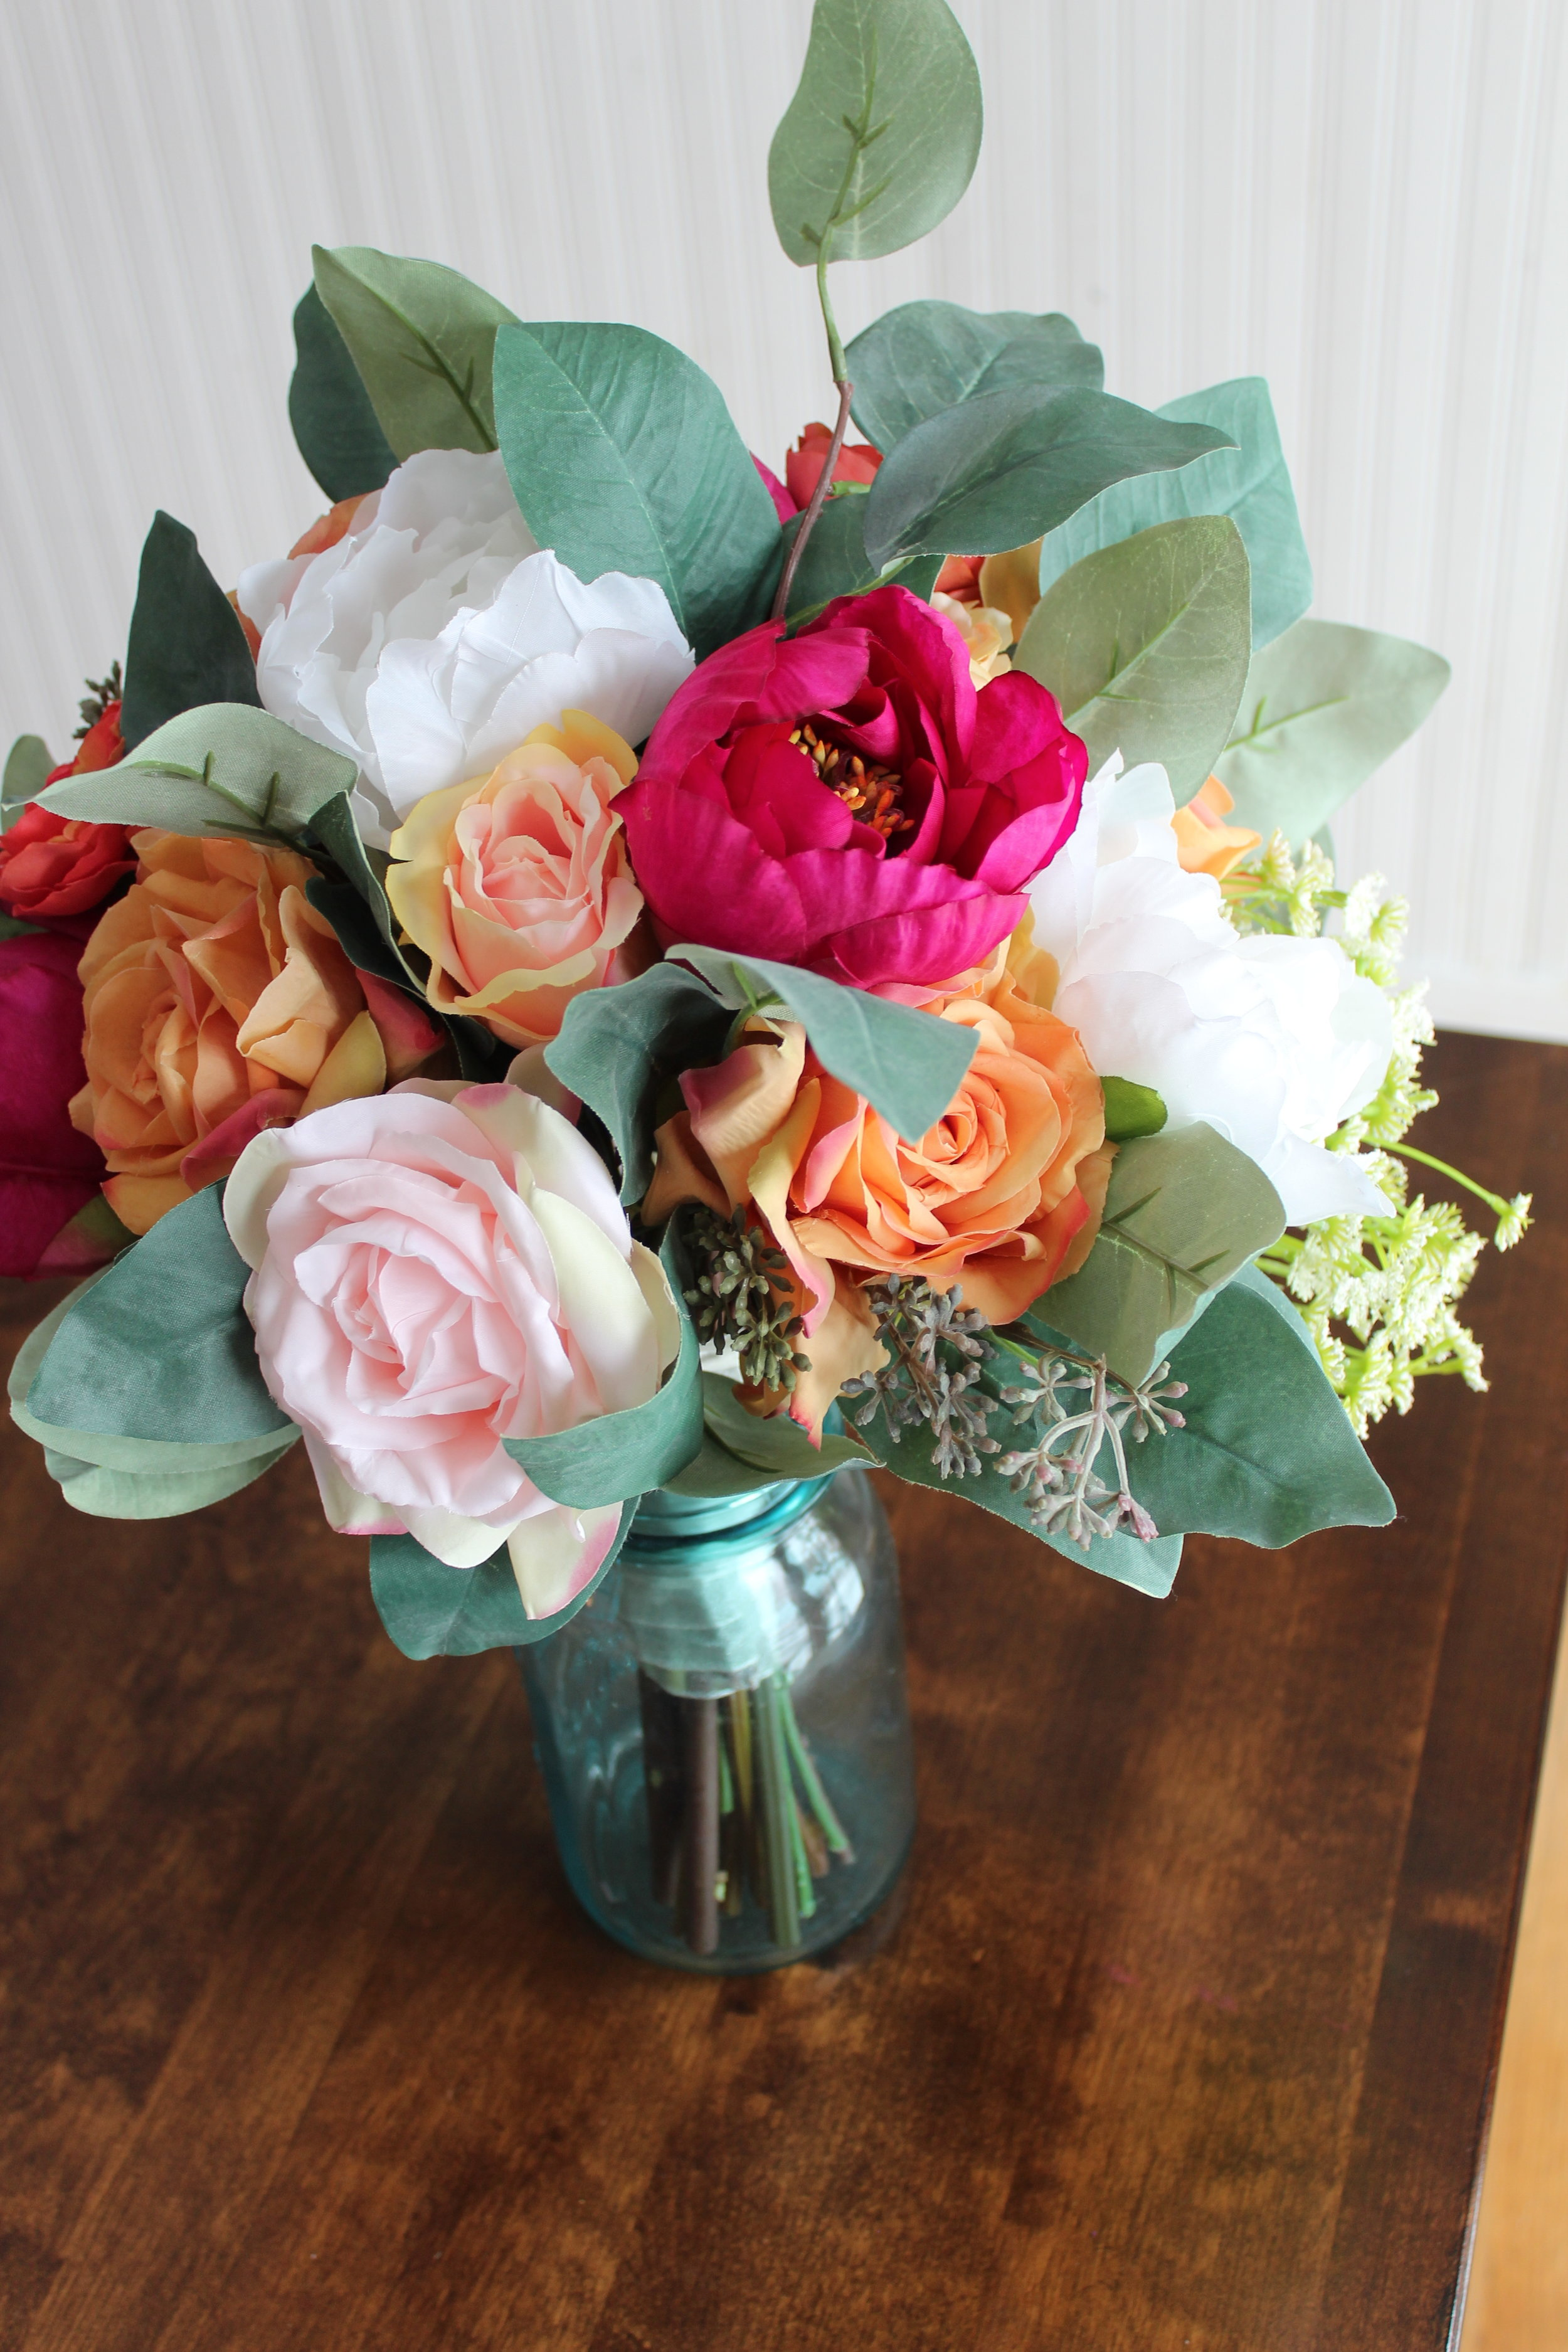 bridal-bouquet-recreation-silk-wedding-flowers-anniversary-gift.jpg